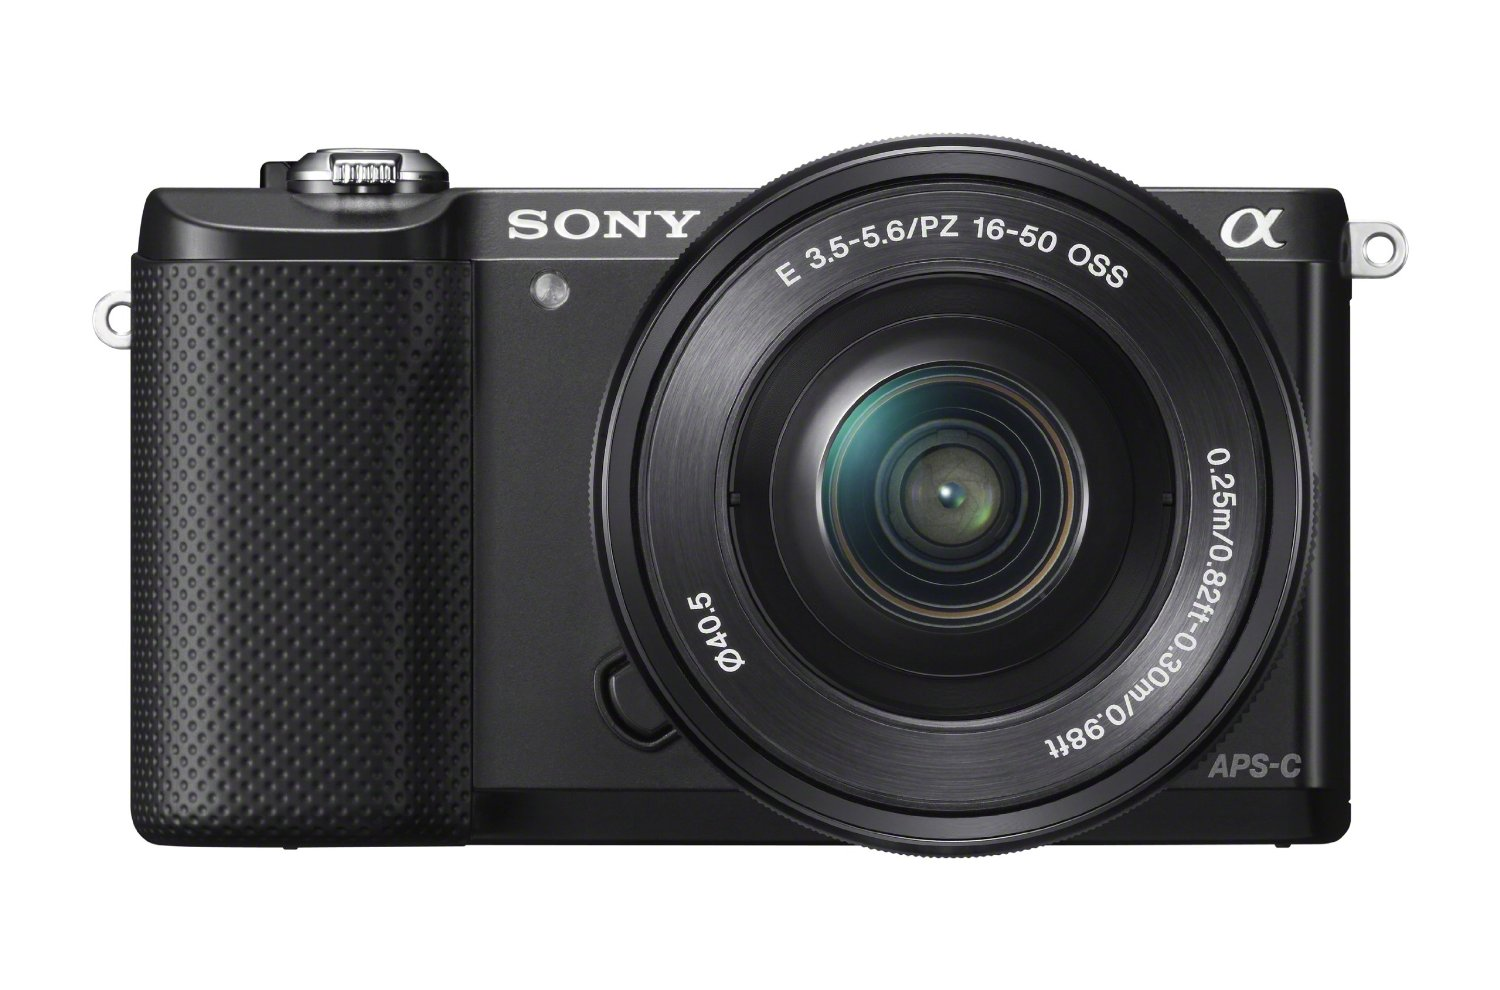 Sony A5000 - Specs: APC-S Sensor, 20.1 MPWho's it for? A photographer and videographer on a budget.